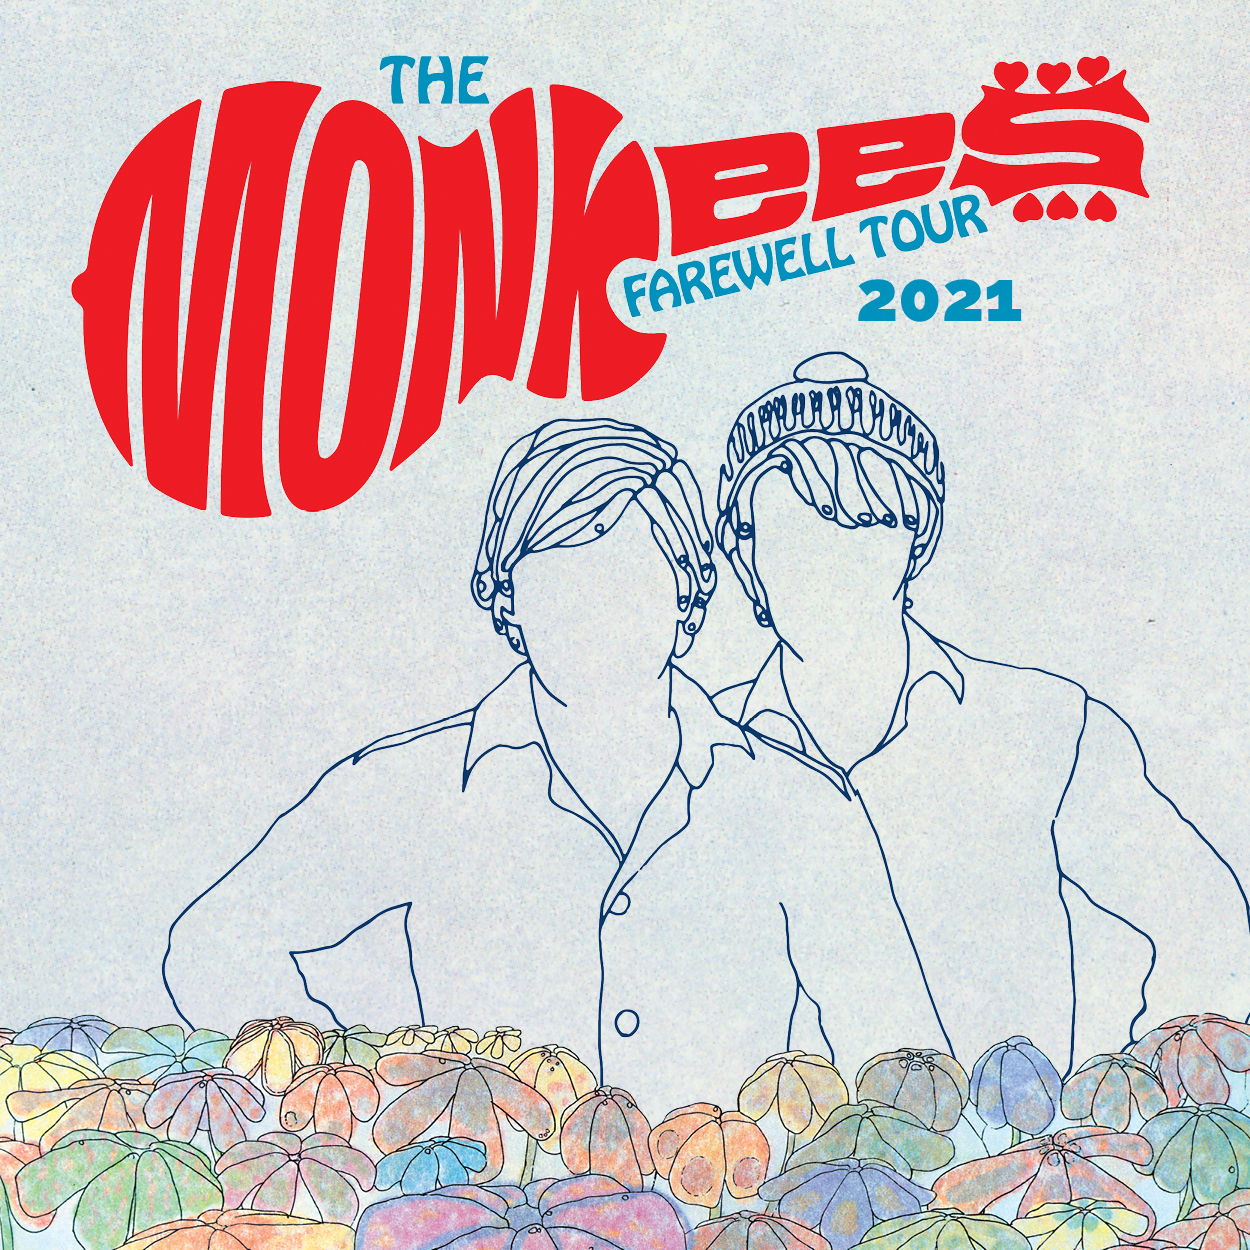 The Monkees: Farewell Tour with Michael Nesmith & Mickey Dolenz